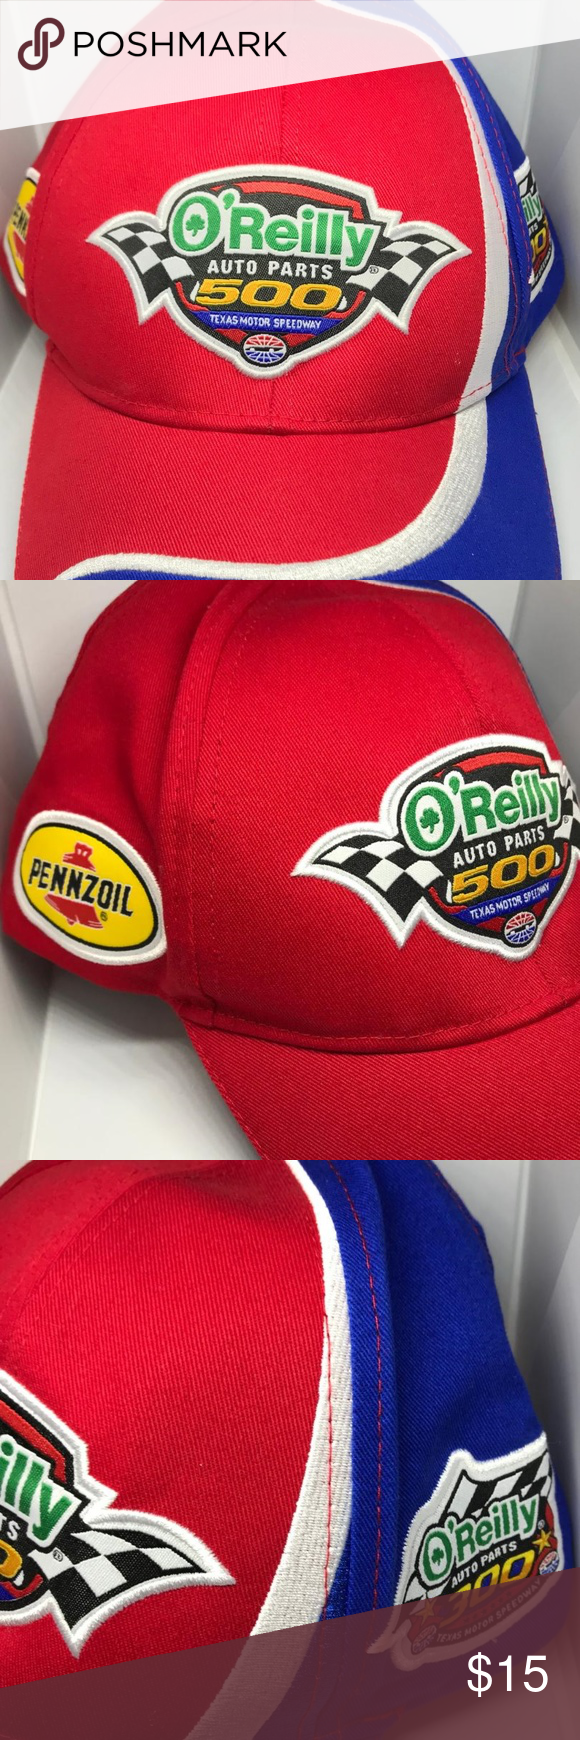 O'Reilly Auto Parts Men's Texas Motor Speedway Cap O